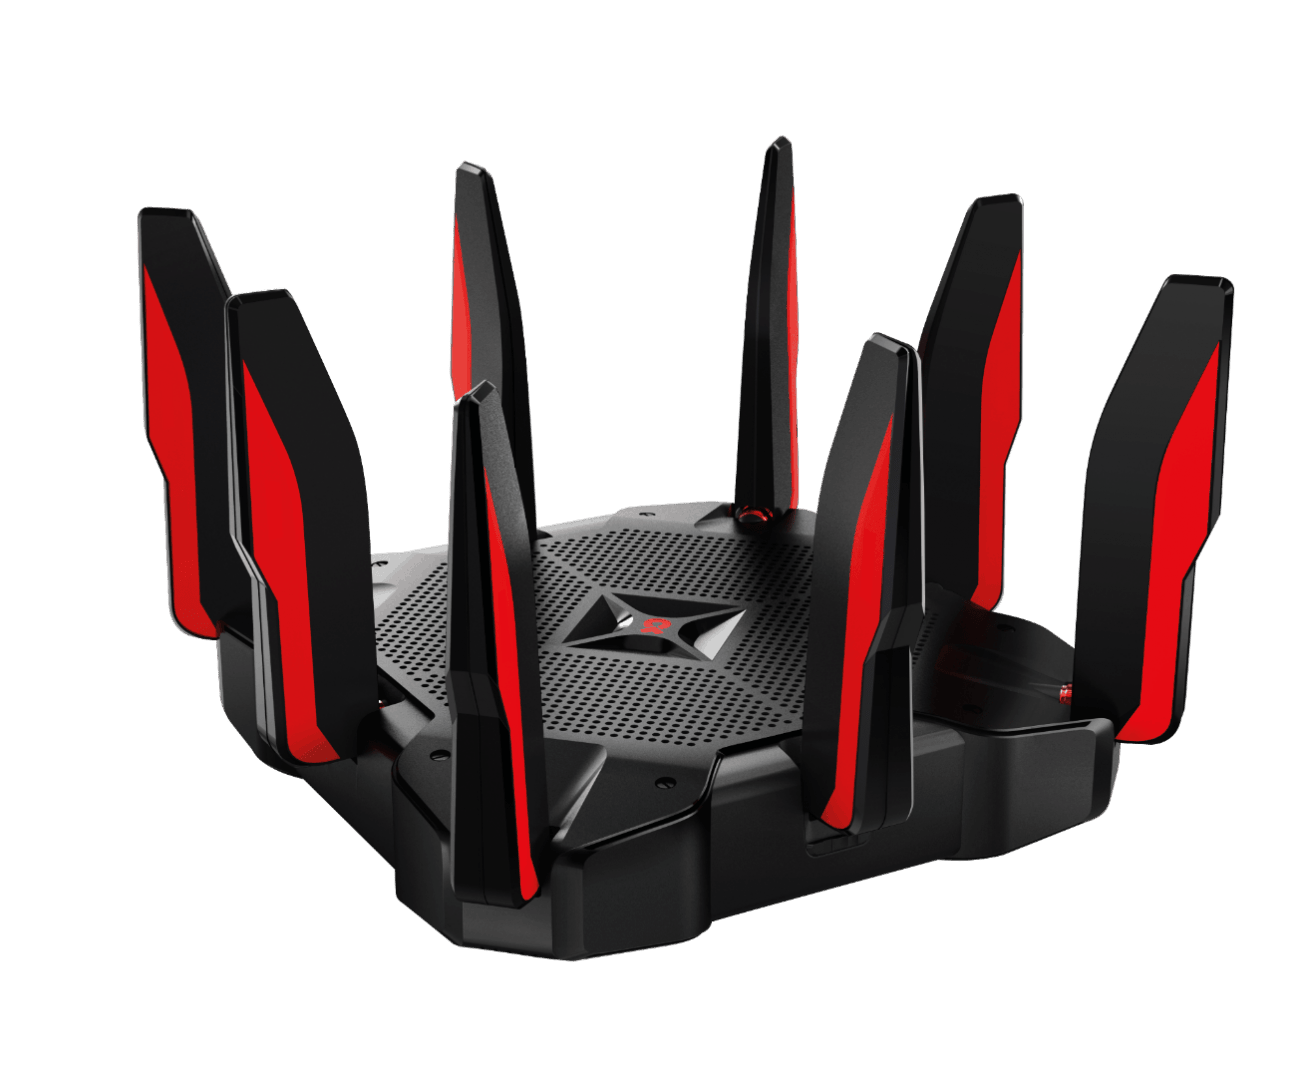 The 10 best wireless routers